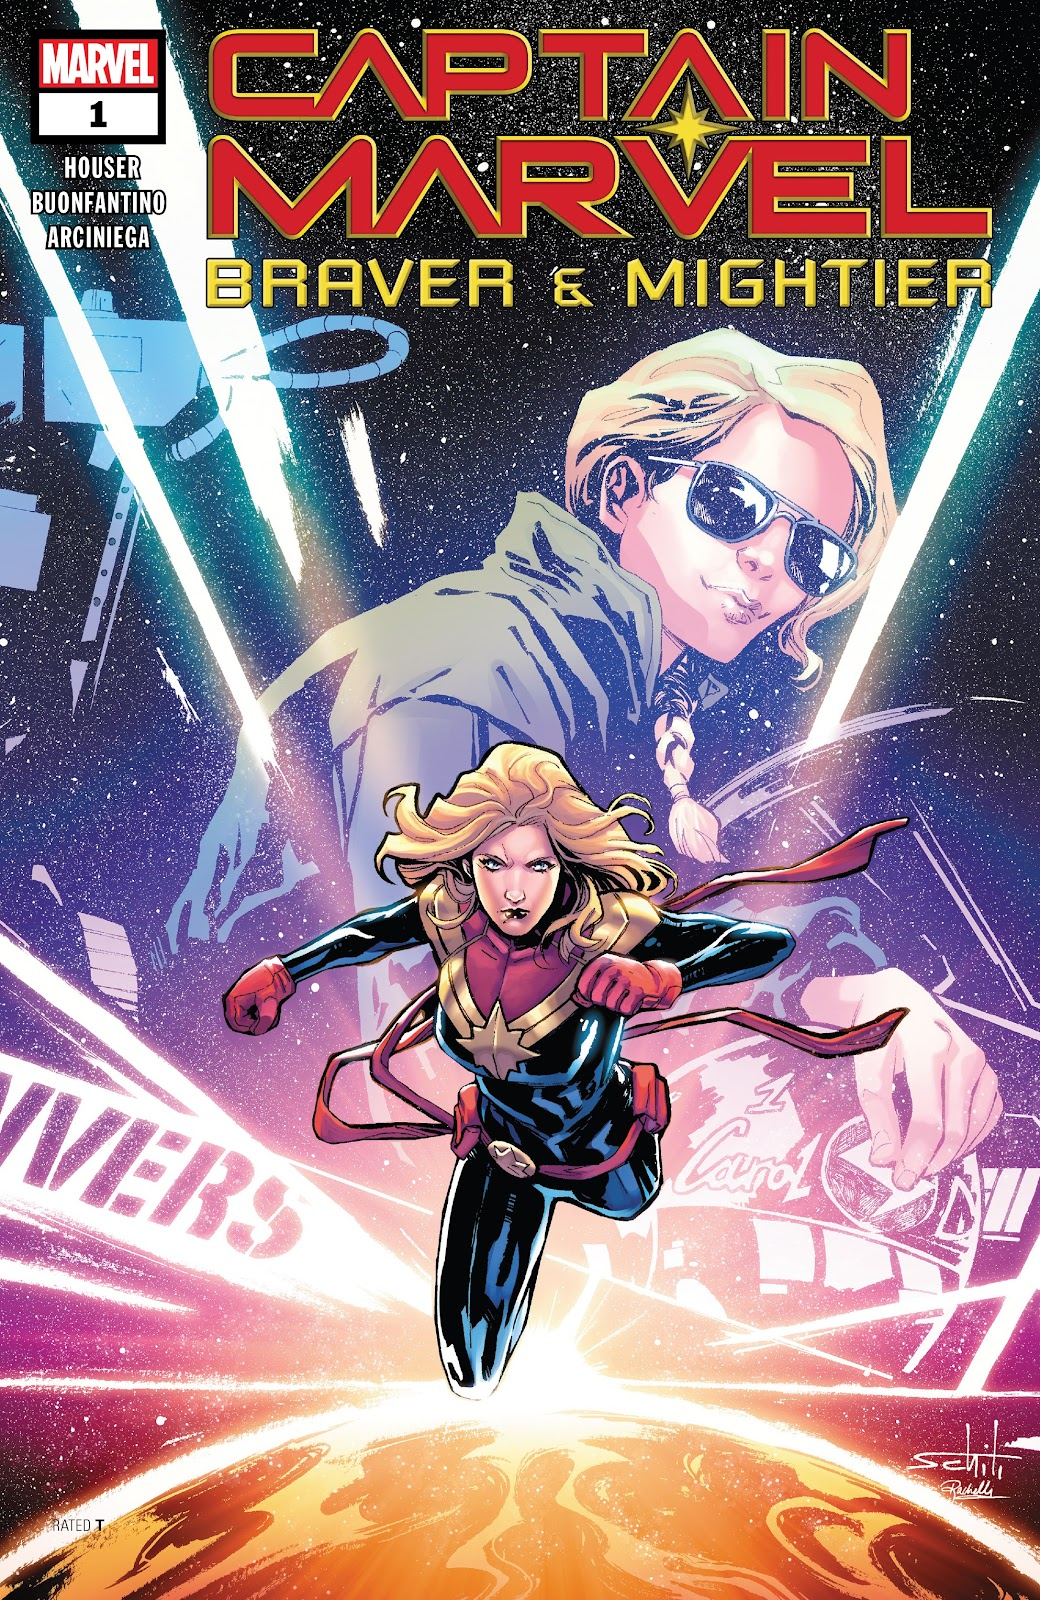 Read online Captain Marvel: Braver & Mightier comic -  Issue #1 - 1